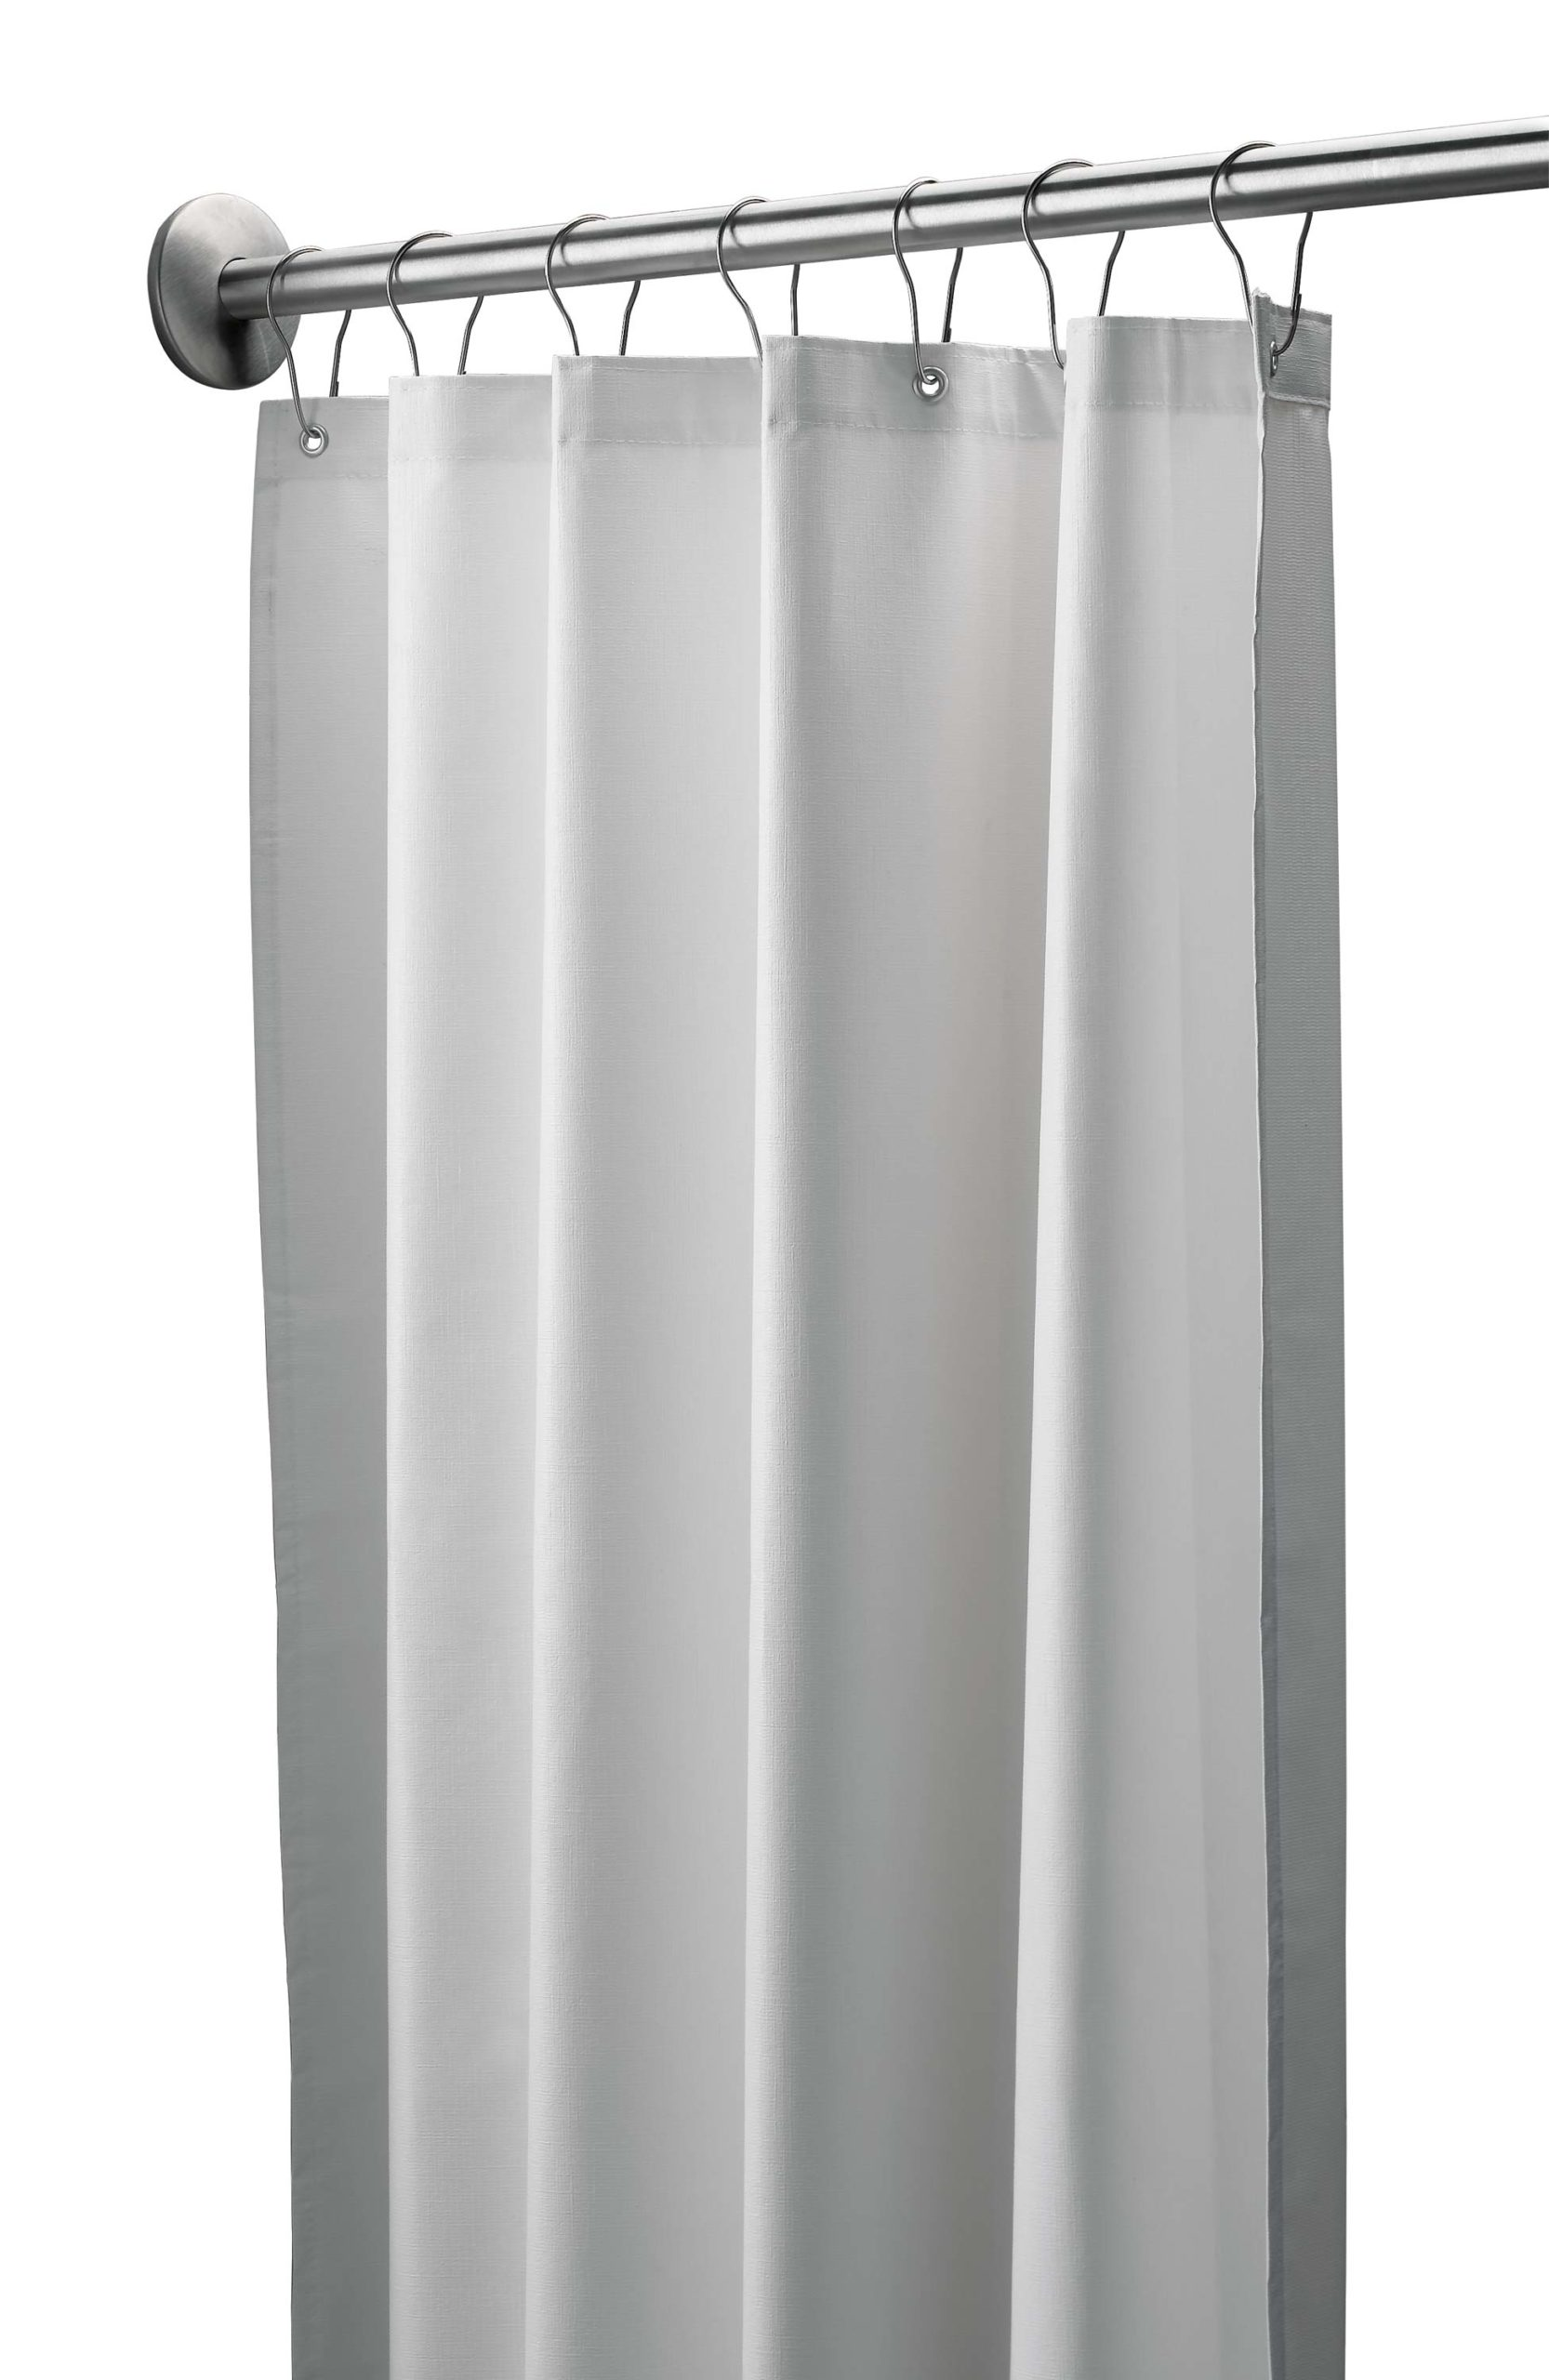 "Bradley 9533-4272 White Antimicrobial Vinyl Shower Curtain 42"" x 72"""